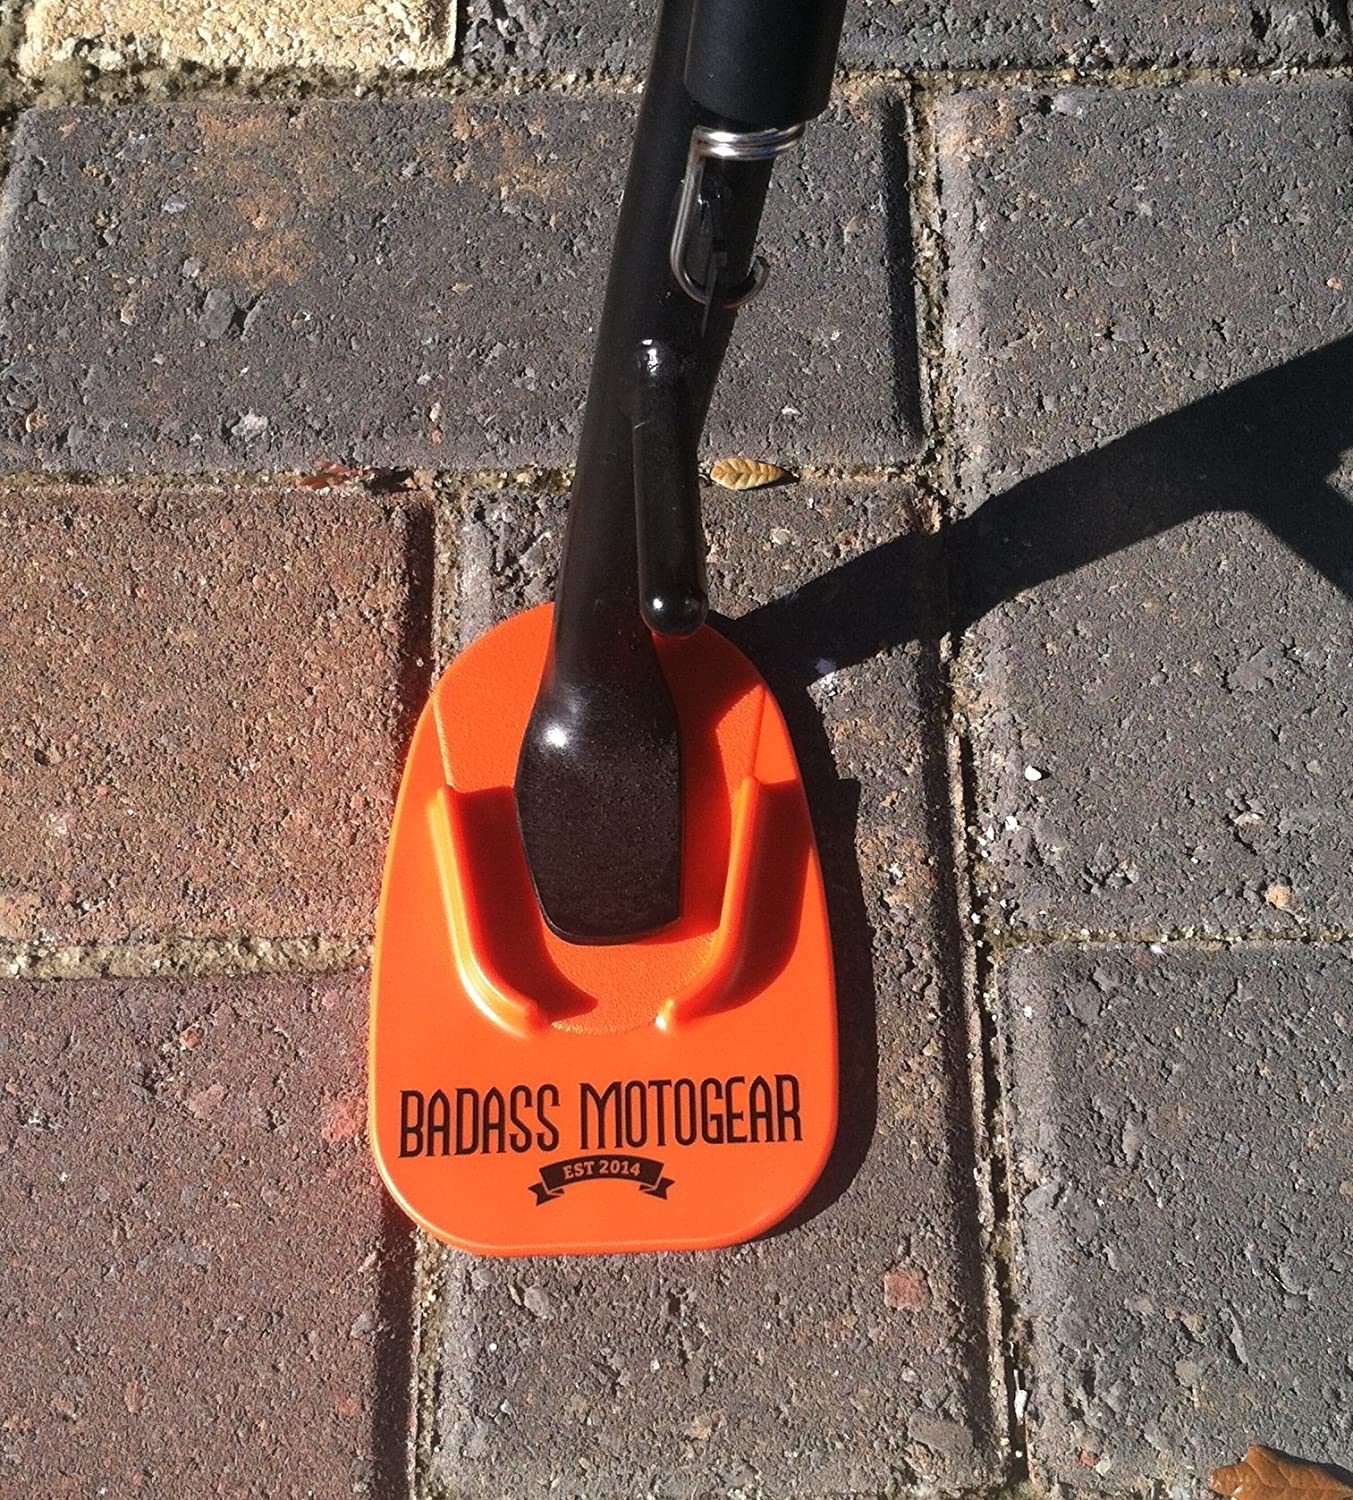 Badass Moto Gear Motorcycle Kickstand Pad - Sturgis Orange - American Made in USA. Durable Biker Kick Stand Coaster/Support Plate Color Choices. Park Your Bike on Hot Pavement, Grass, Soft Ground